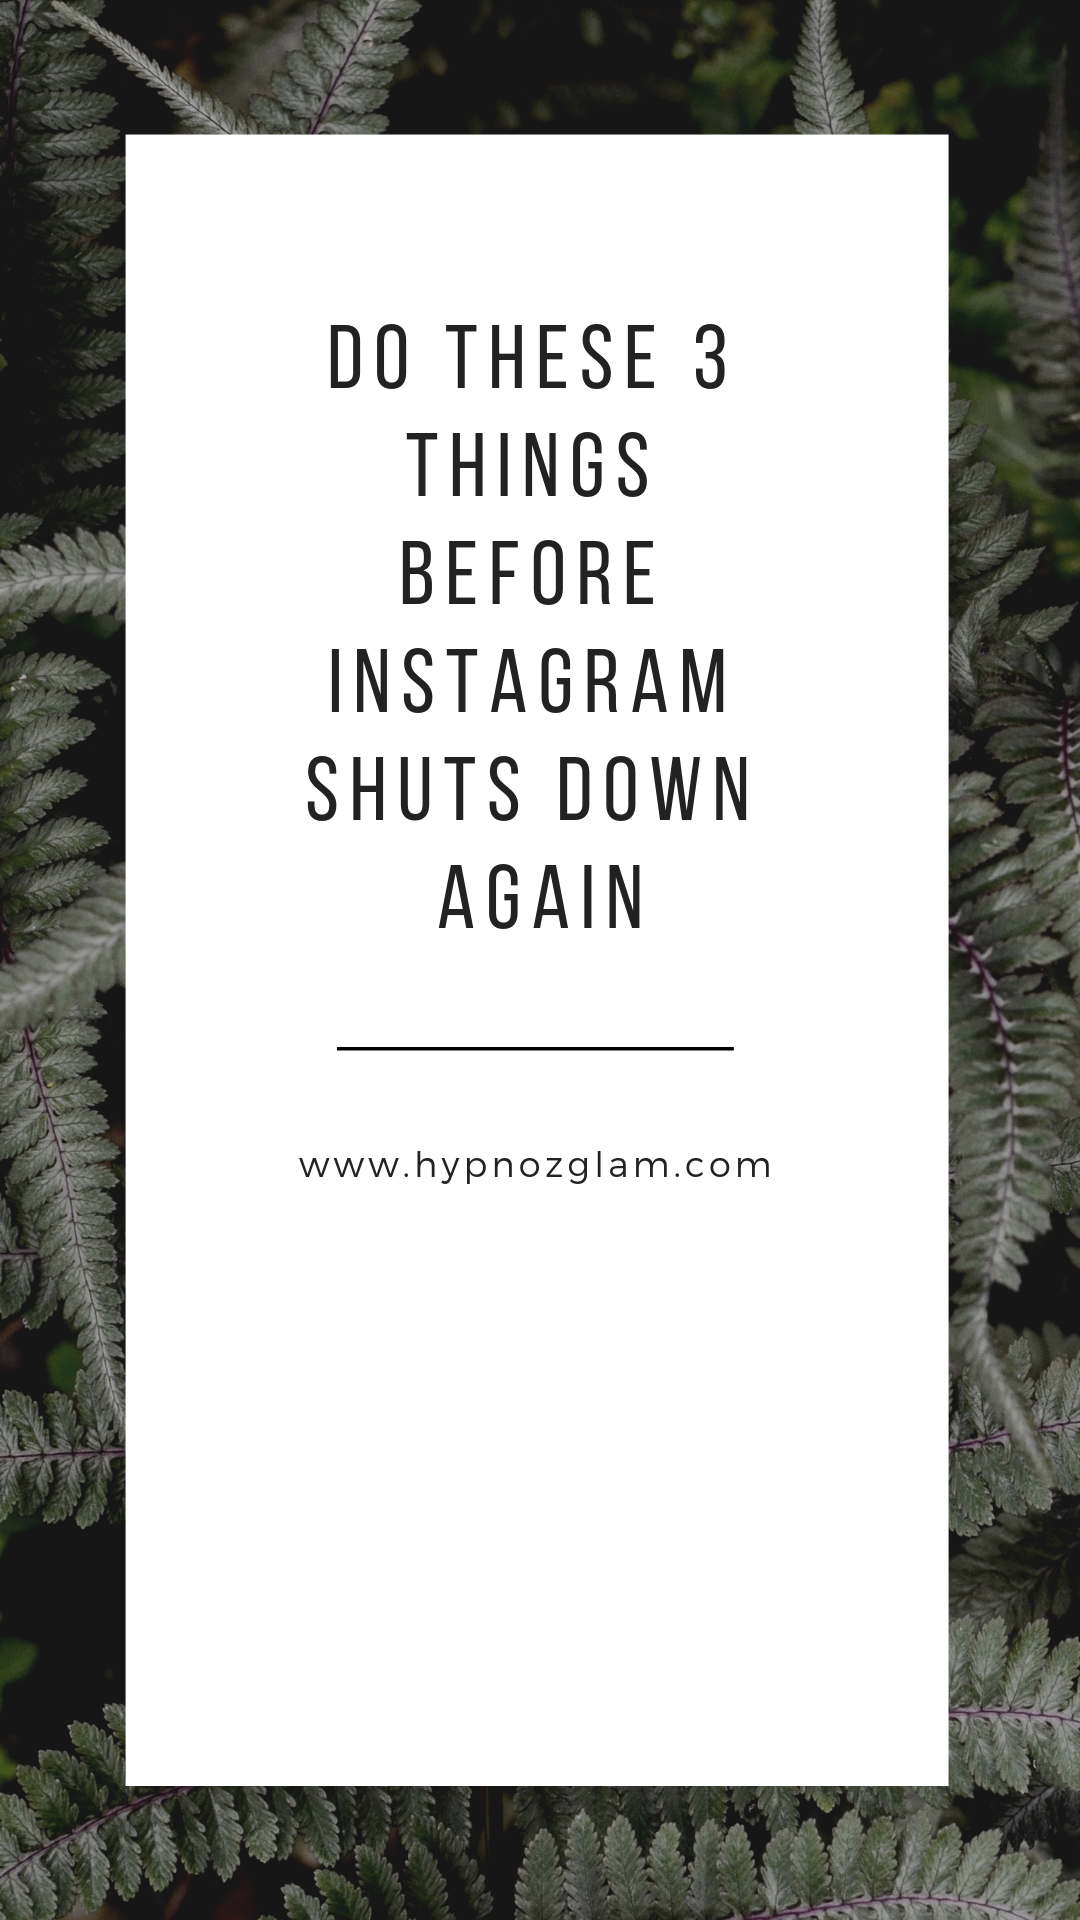 Do these 3 things before Instagram shuts down again